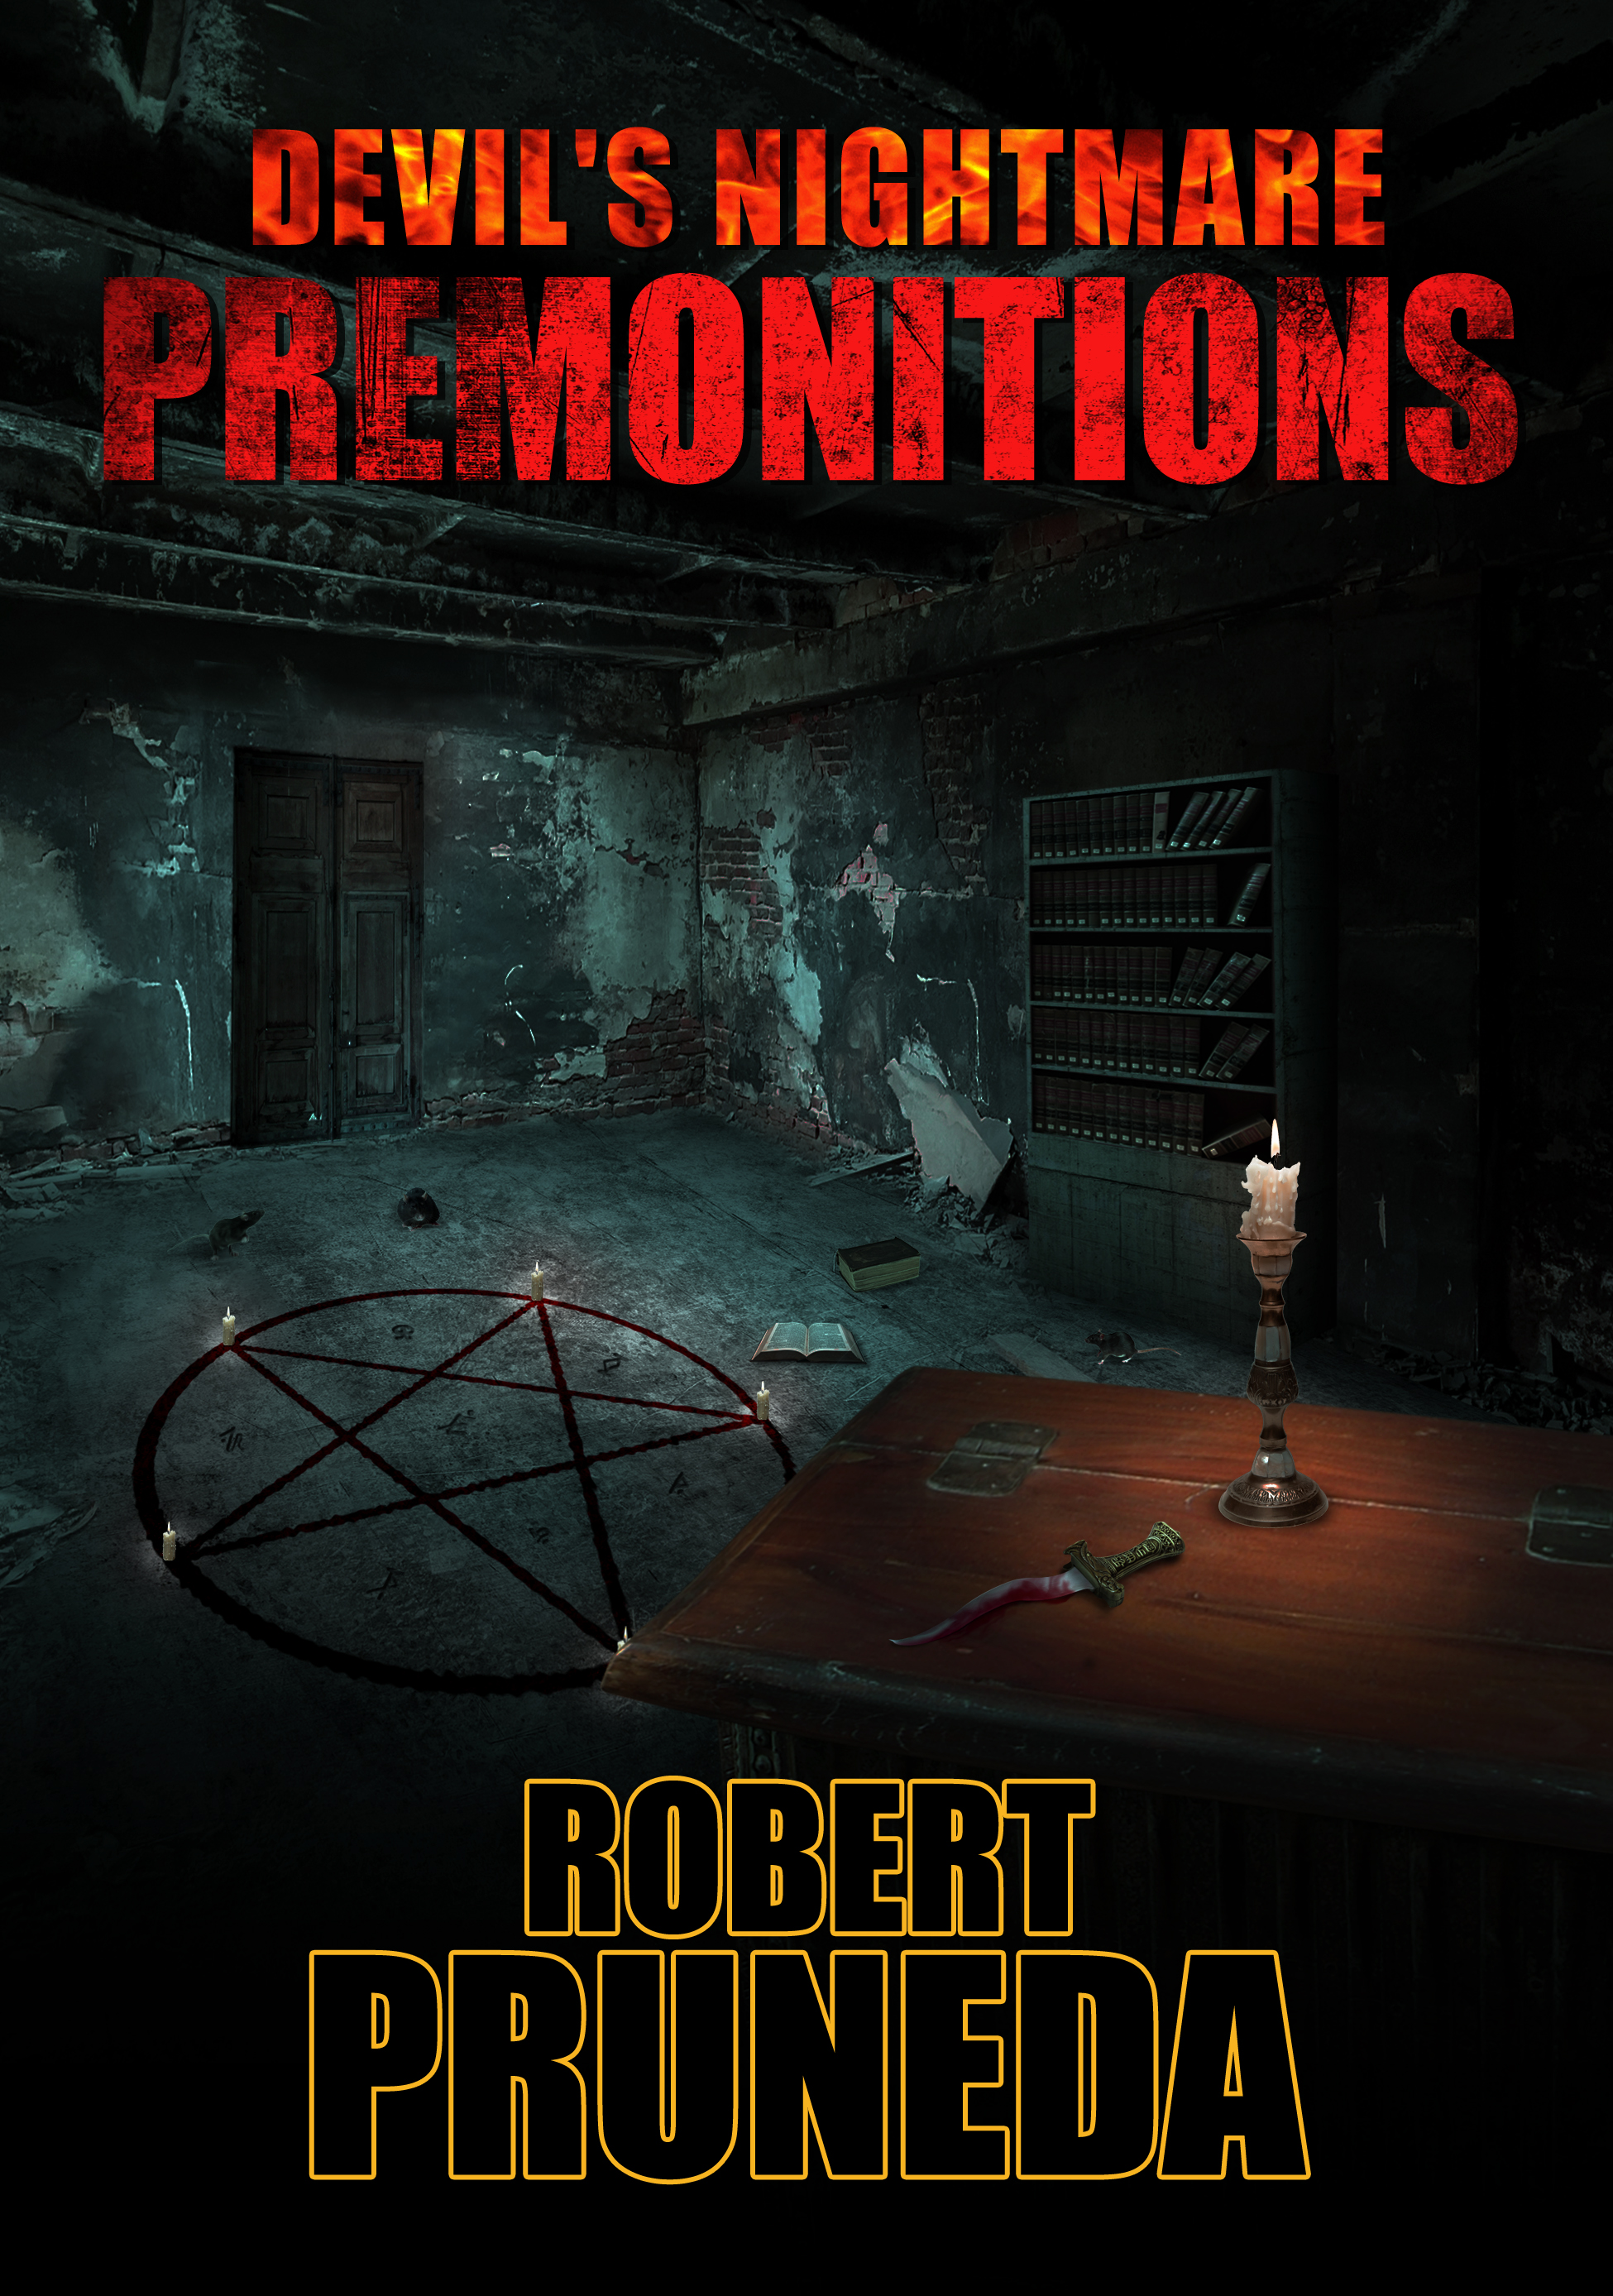 Premonitions (proof 5  Full Title)